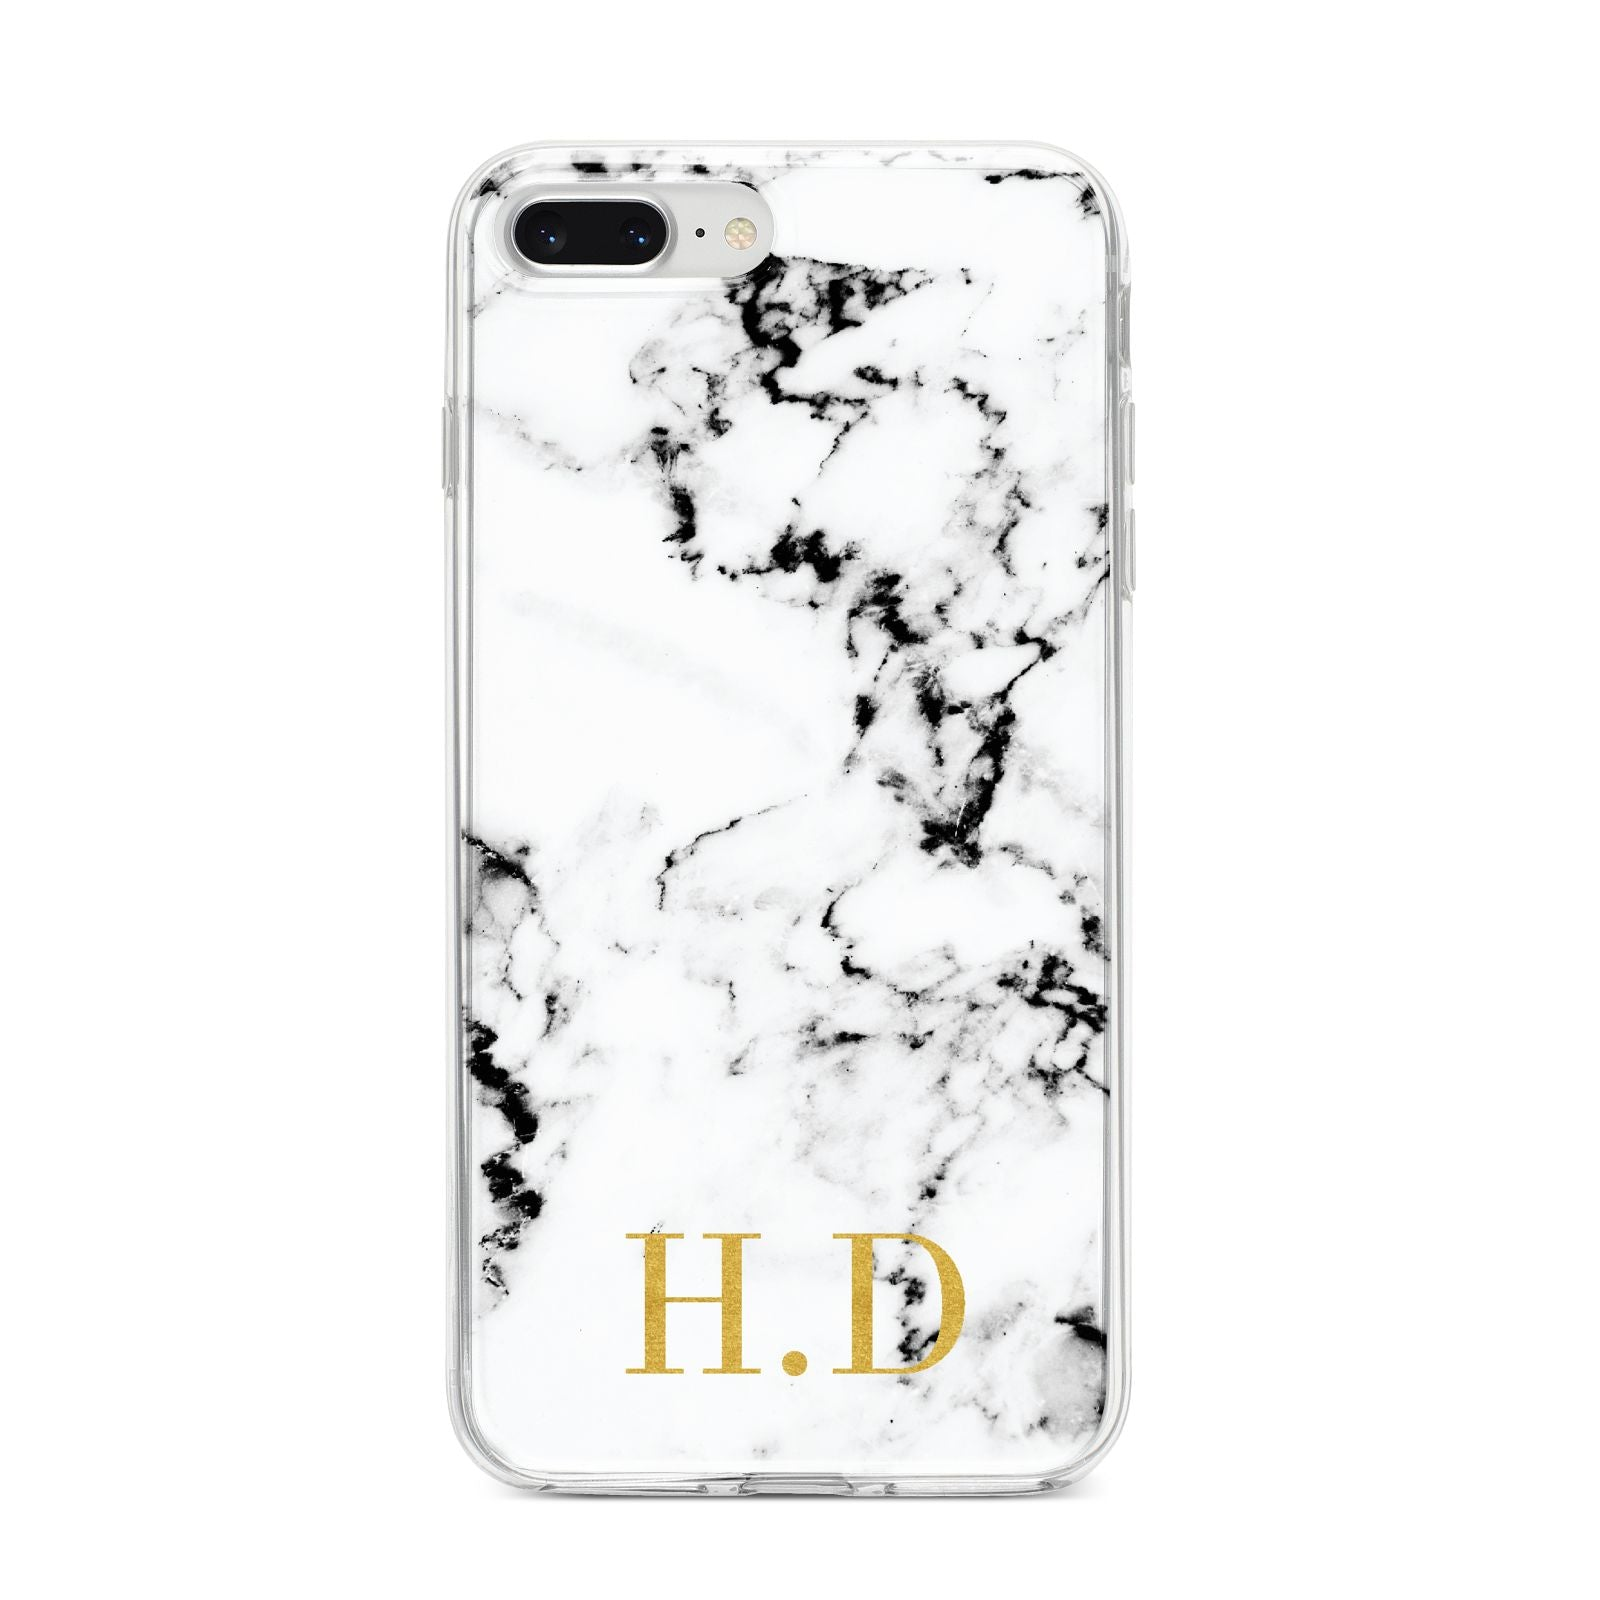 Personalised Gold Initials Marble New iPhone 8 Plus Bumper Case on Silver iPhone